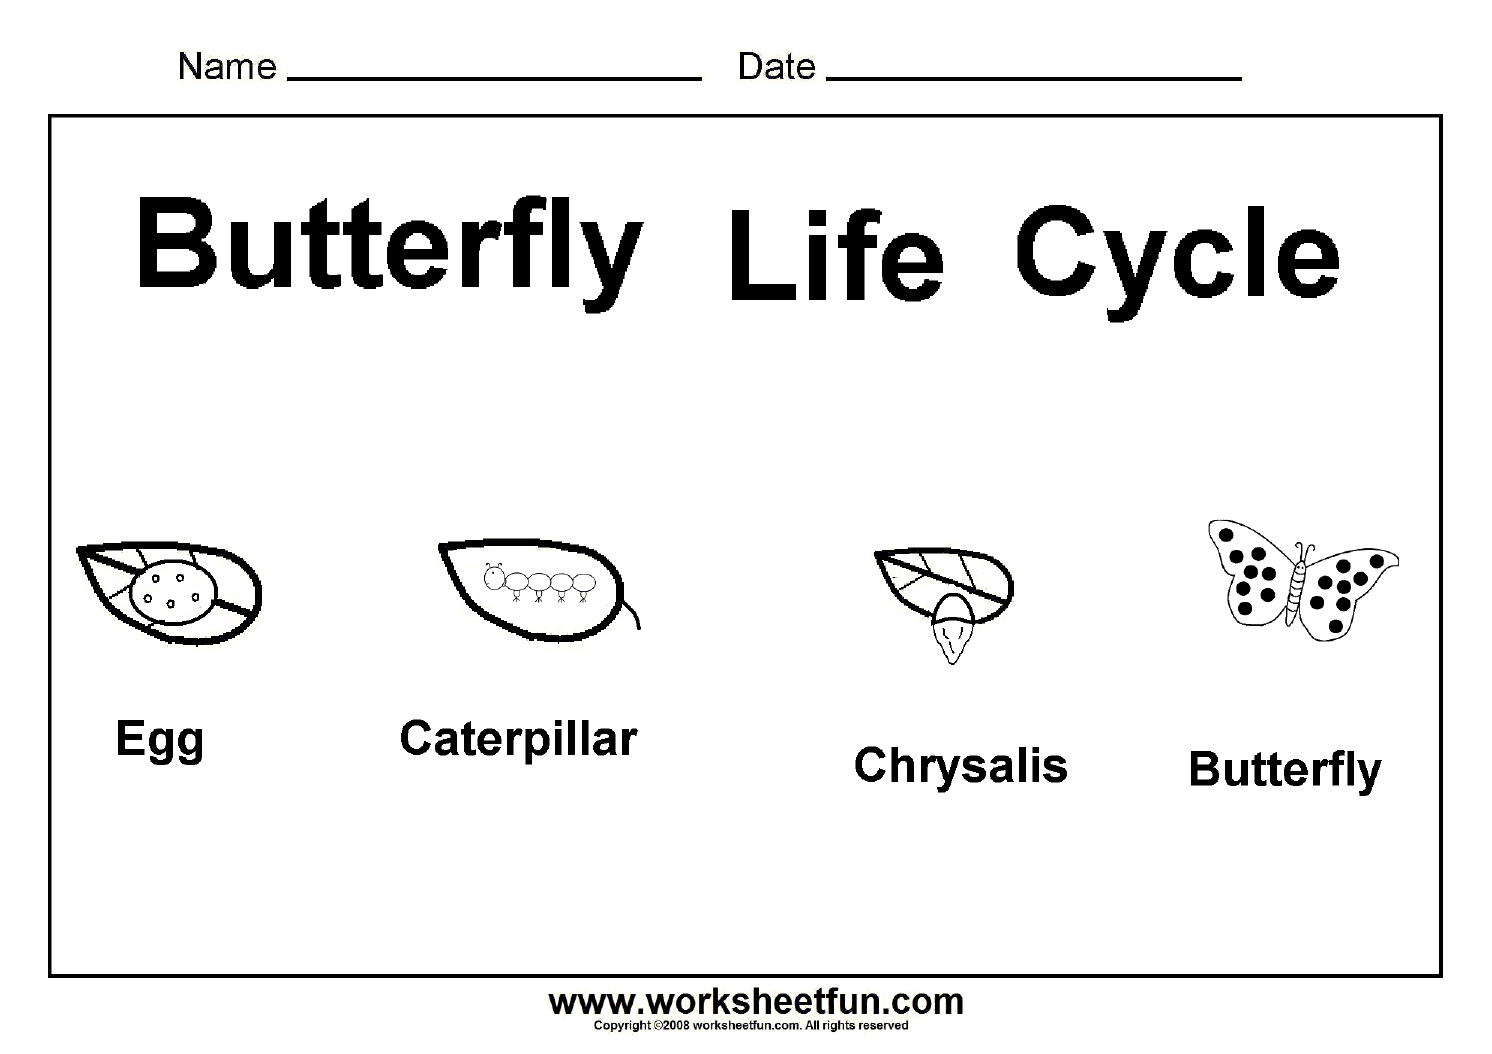 Worksheet : Butterfly Life Cycle One Free Printable Science - Free Printable Science Worksheets